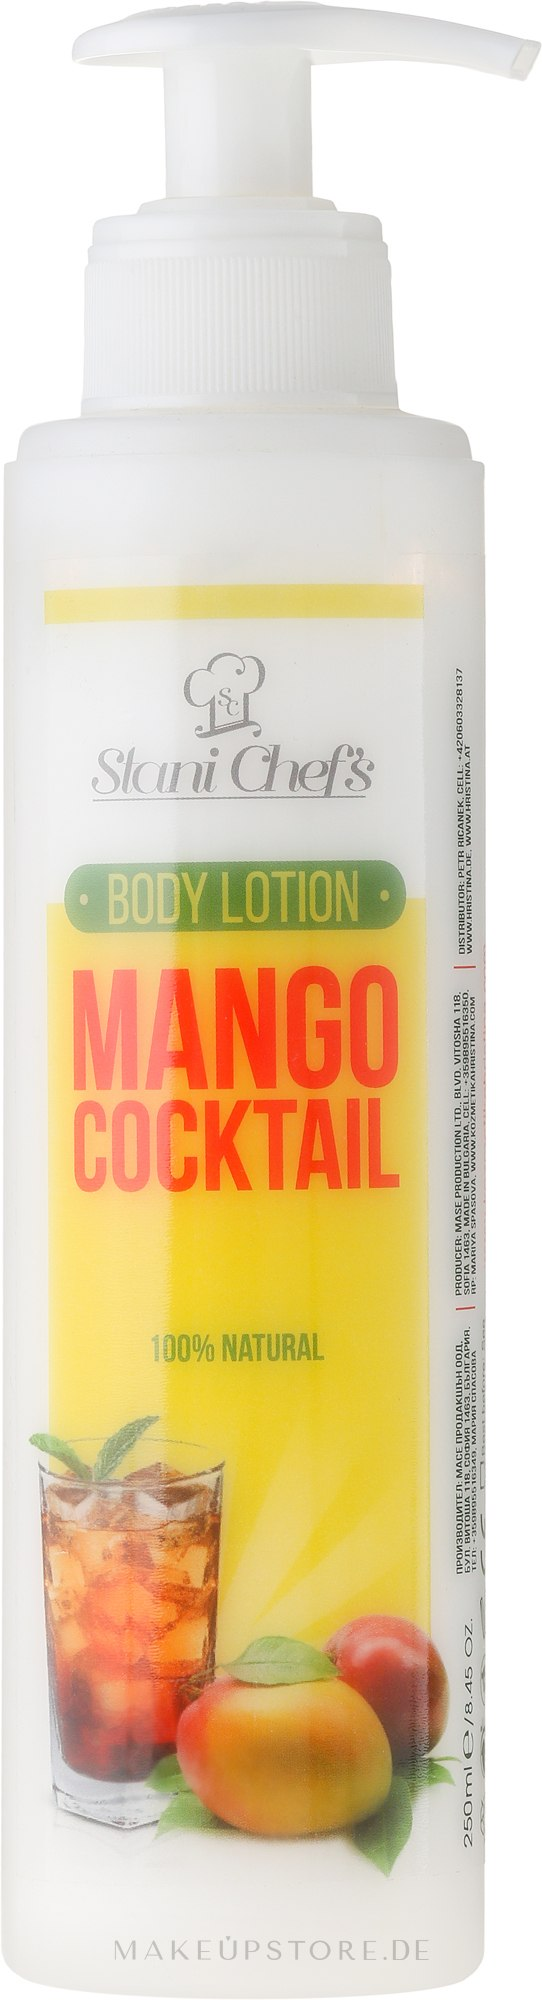 Körperlotion mit Mango-Cocktail - Stani Chef's Mango Cocktail Body Lotion — Bild 250 ml